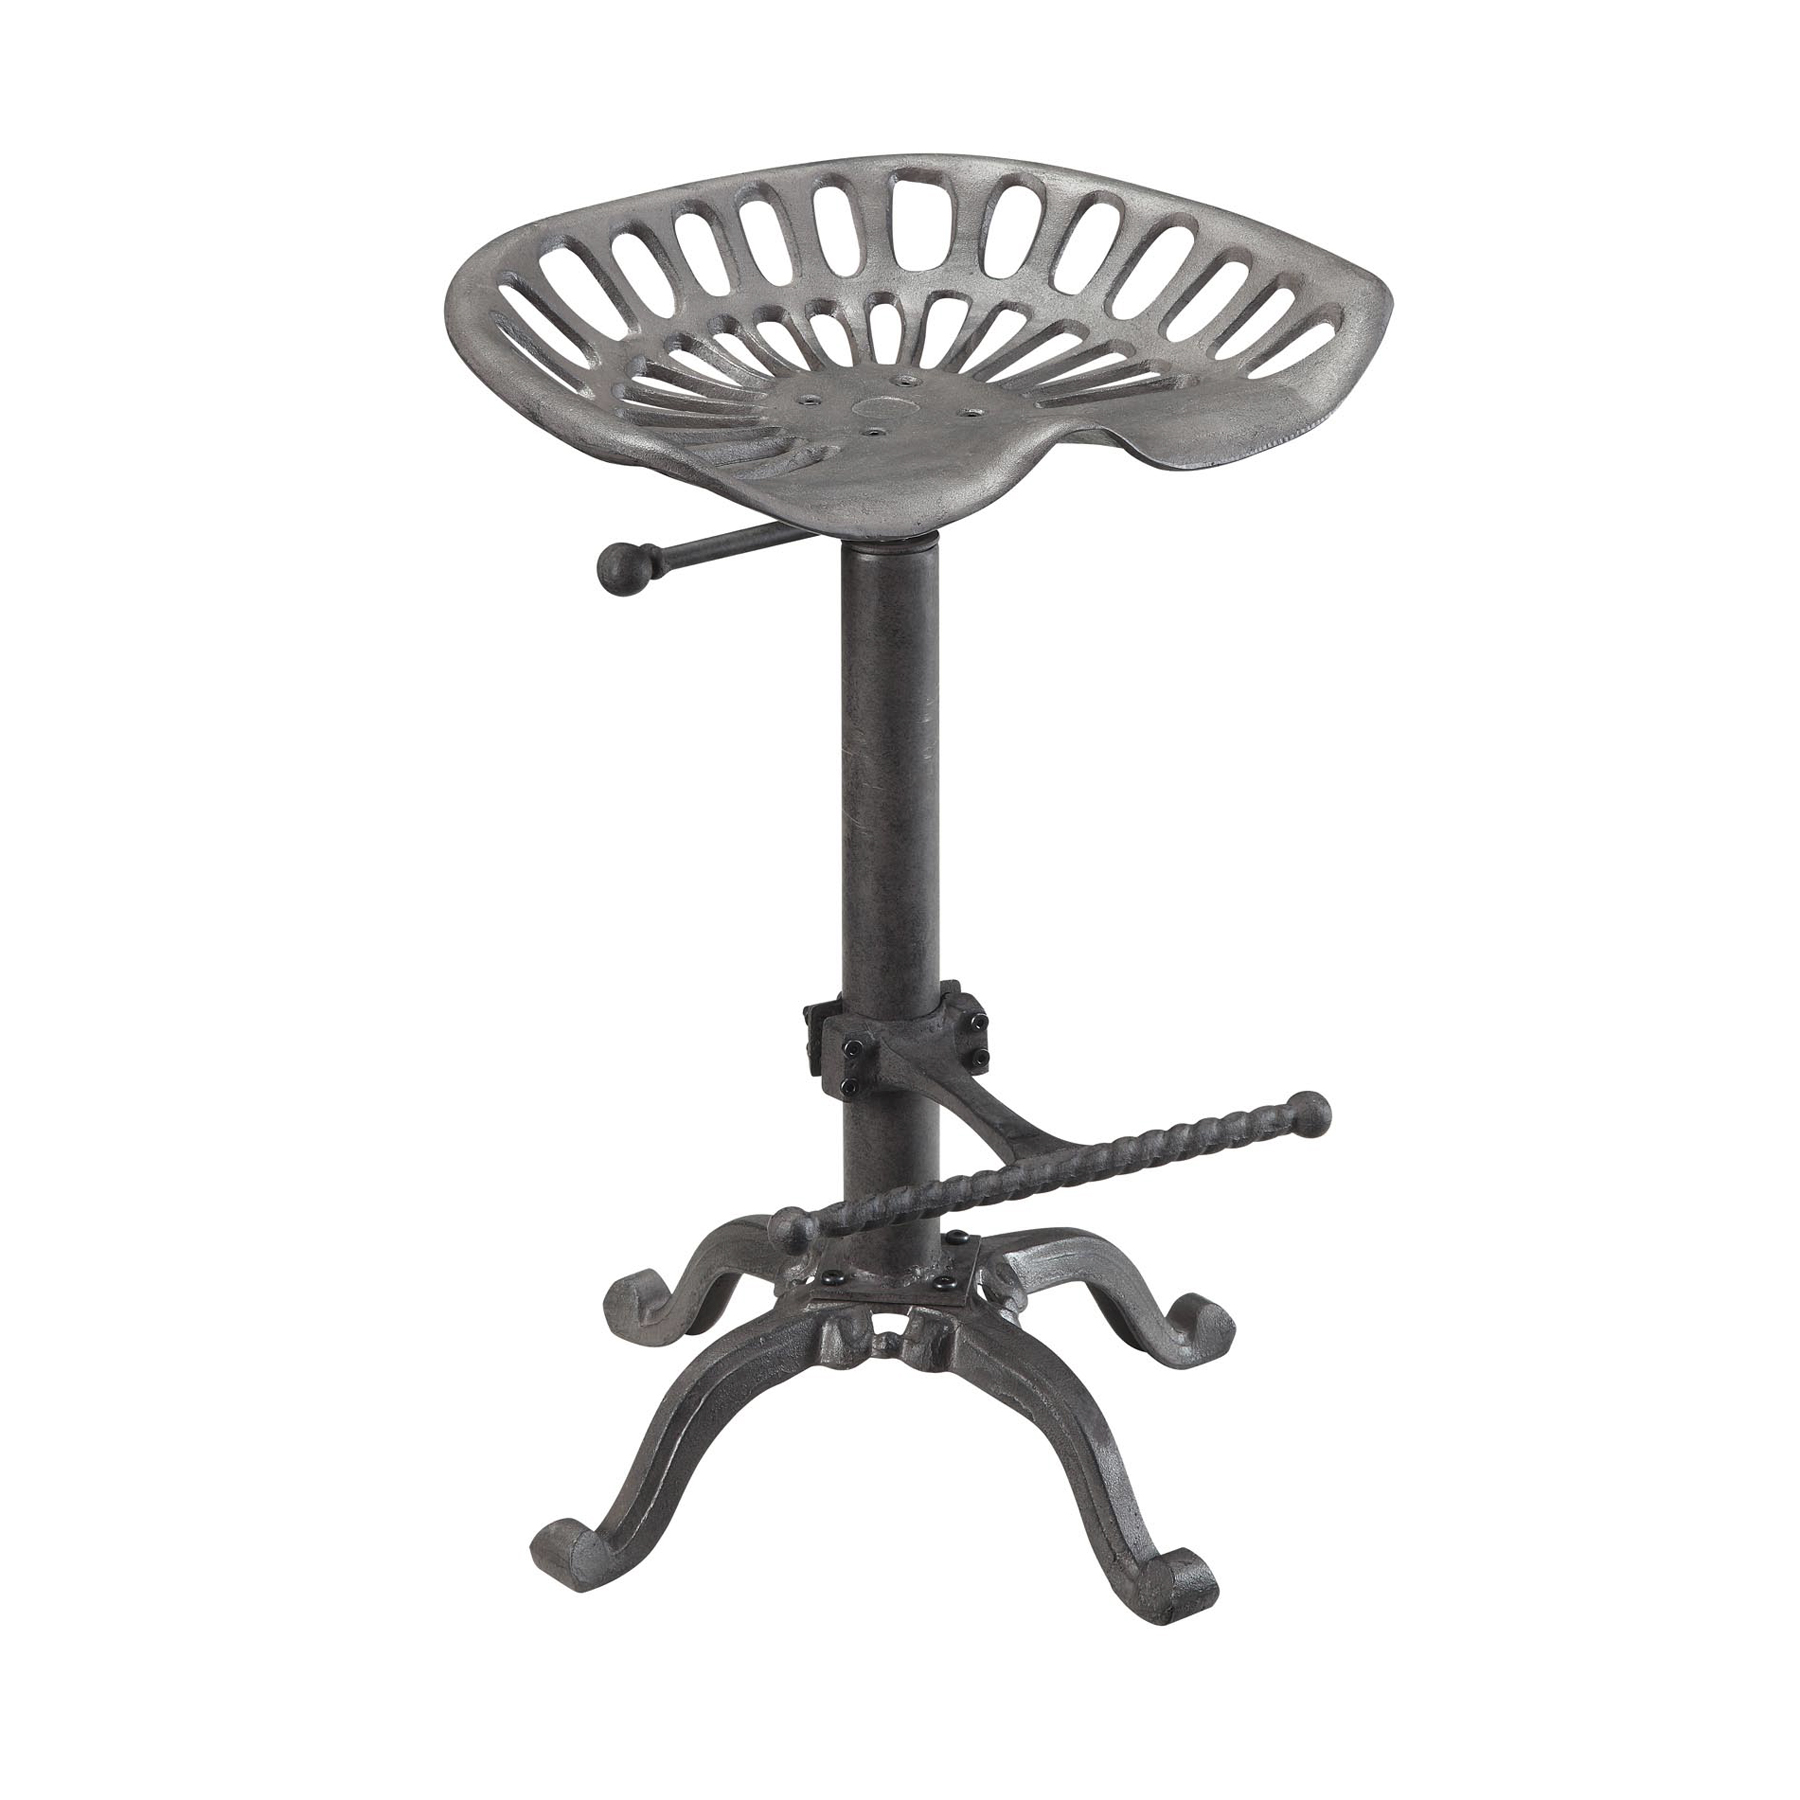 Hunter Adjustable Tractor Seat Stool, Industrial